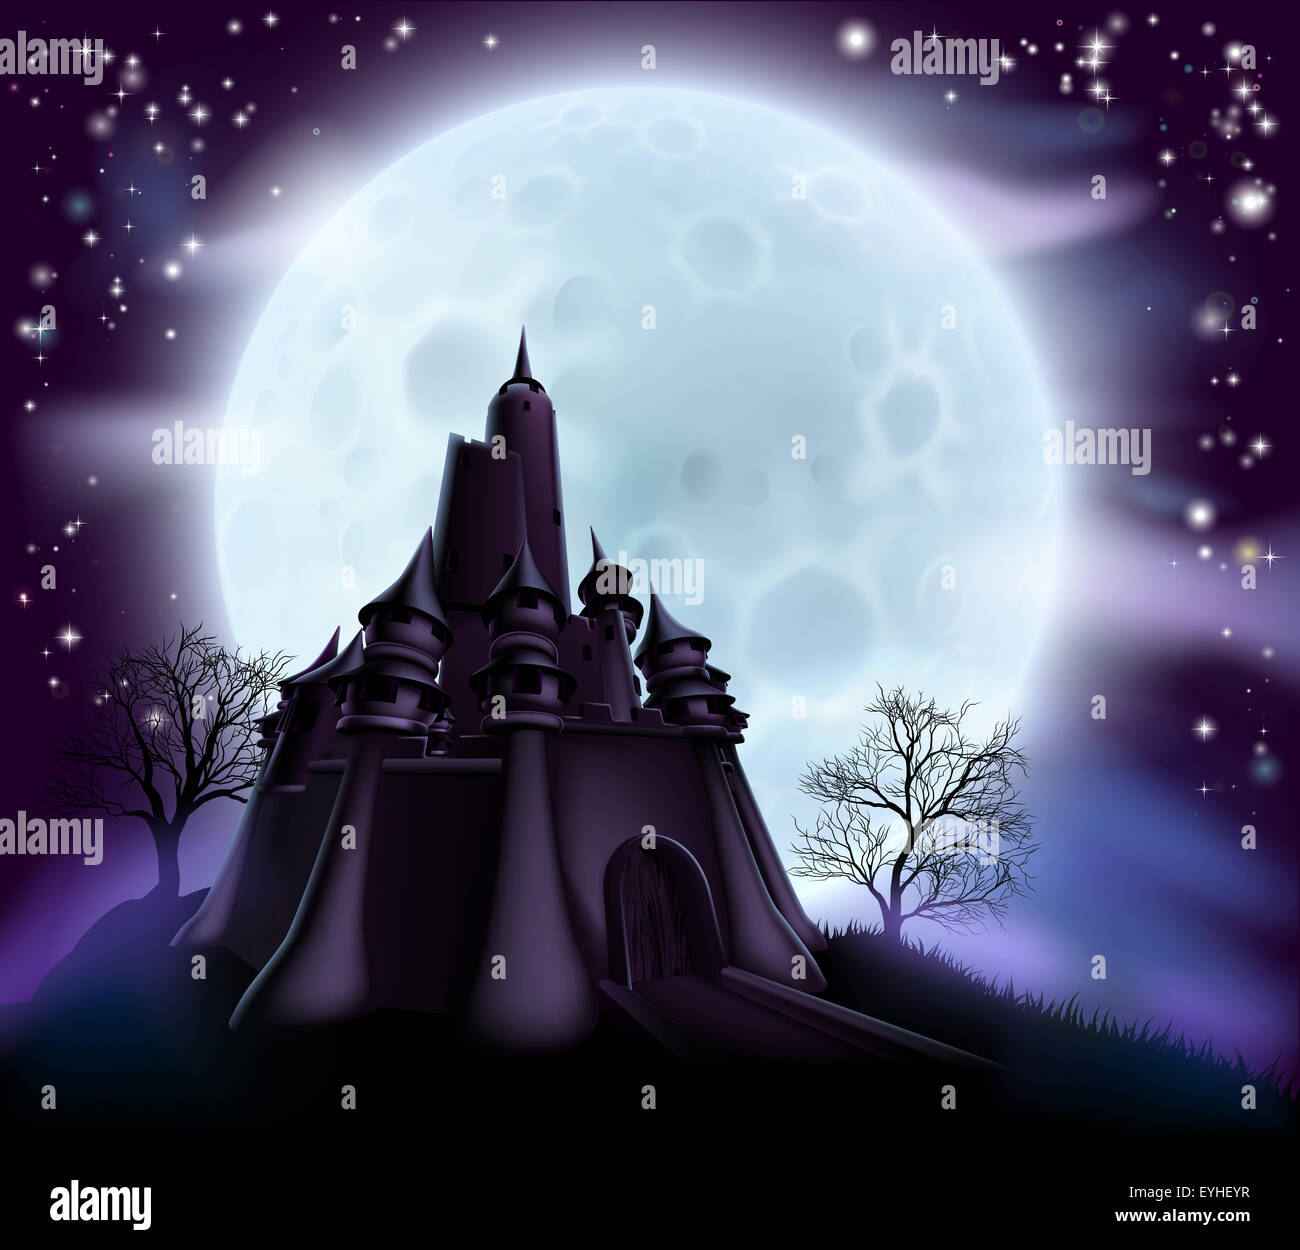 Halloween castle background with a spooky haunted castle and trees on a hill silhouetted against a full moon - Stock Image